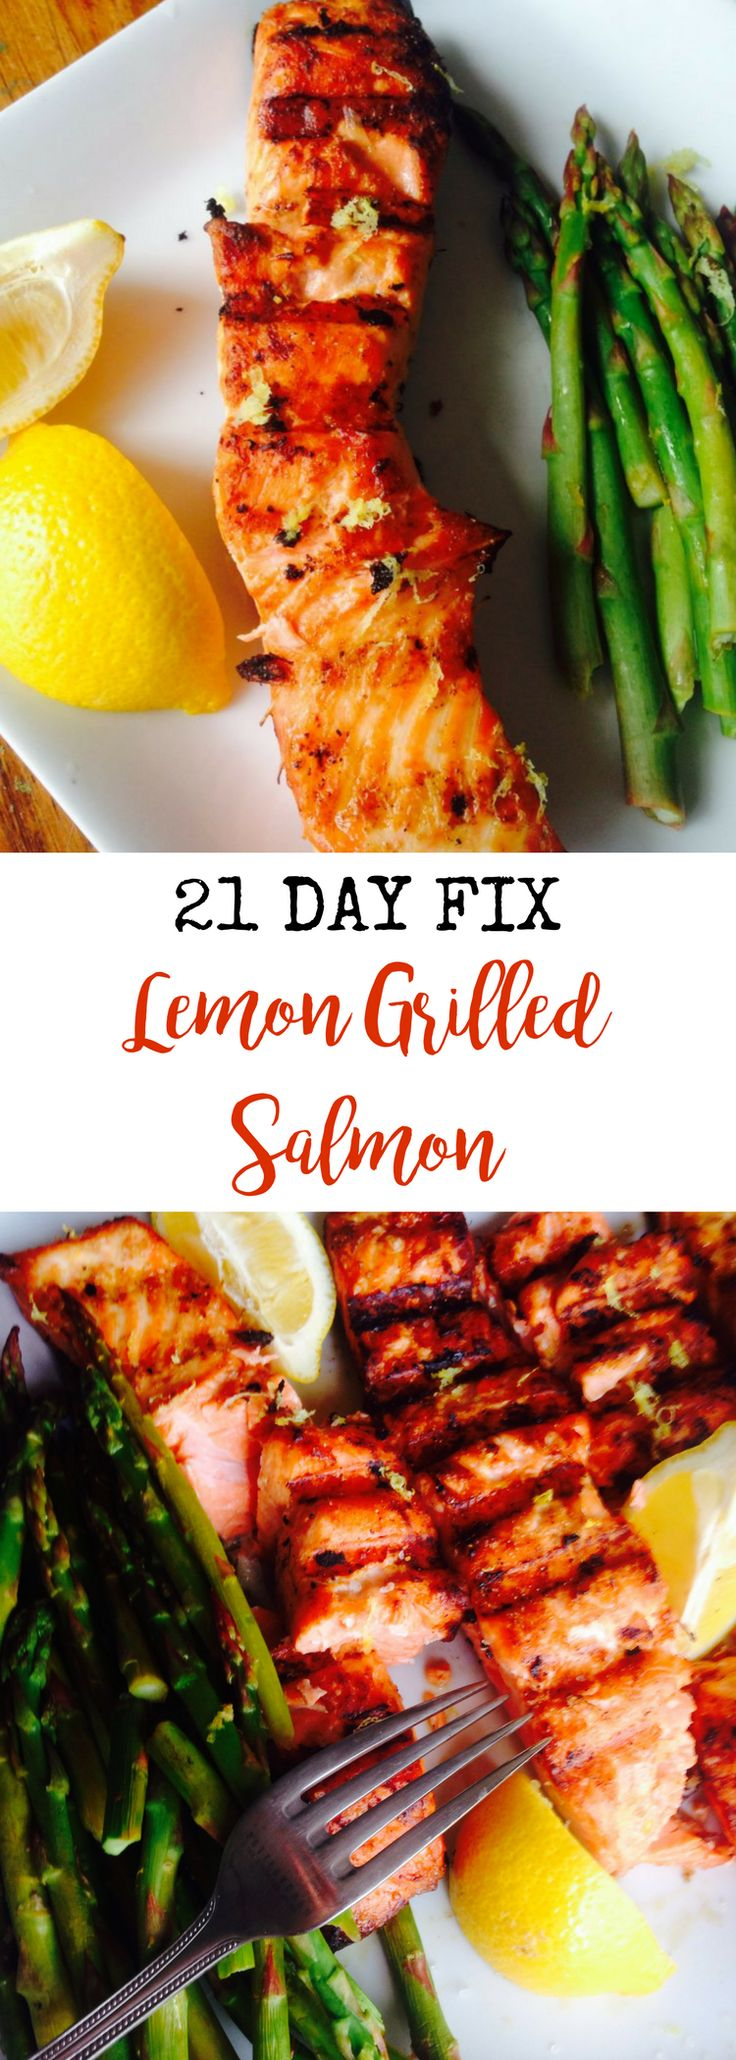 Lemon Grilled Salmon {21 Day Fix}   Confessions of a Fit Foodie